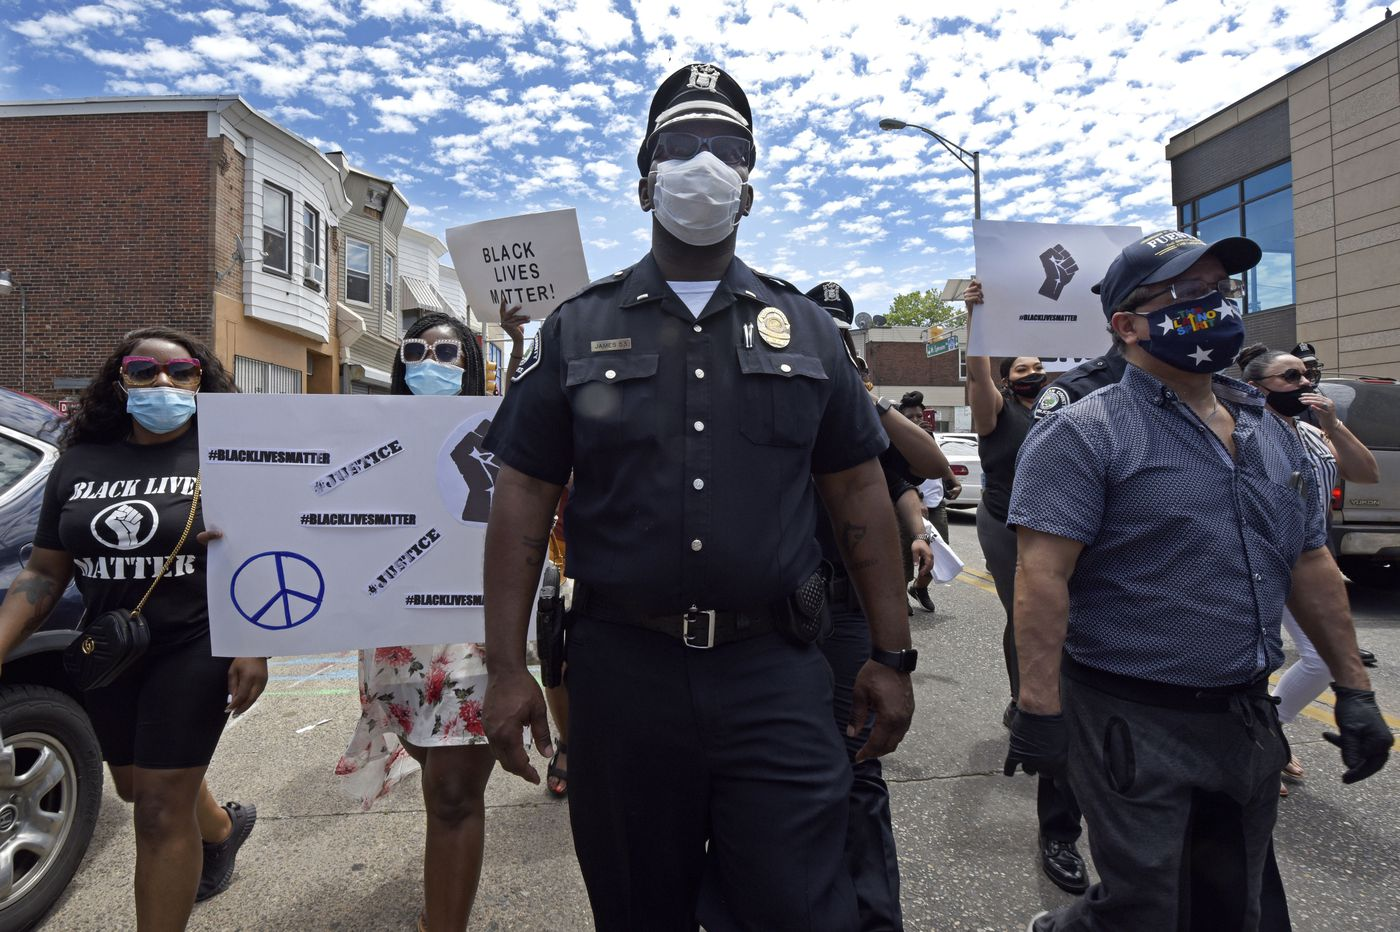 Is Camden a good model for the future of policing?   Pro/Con